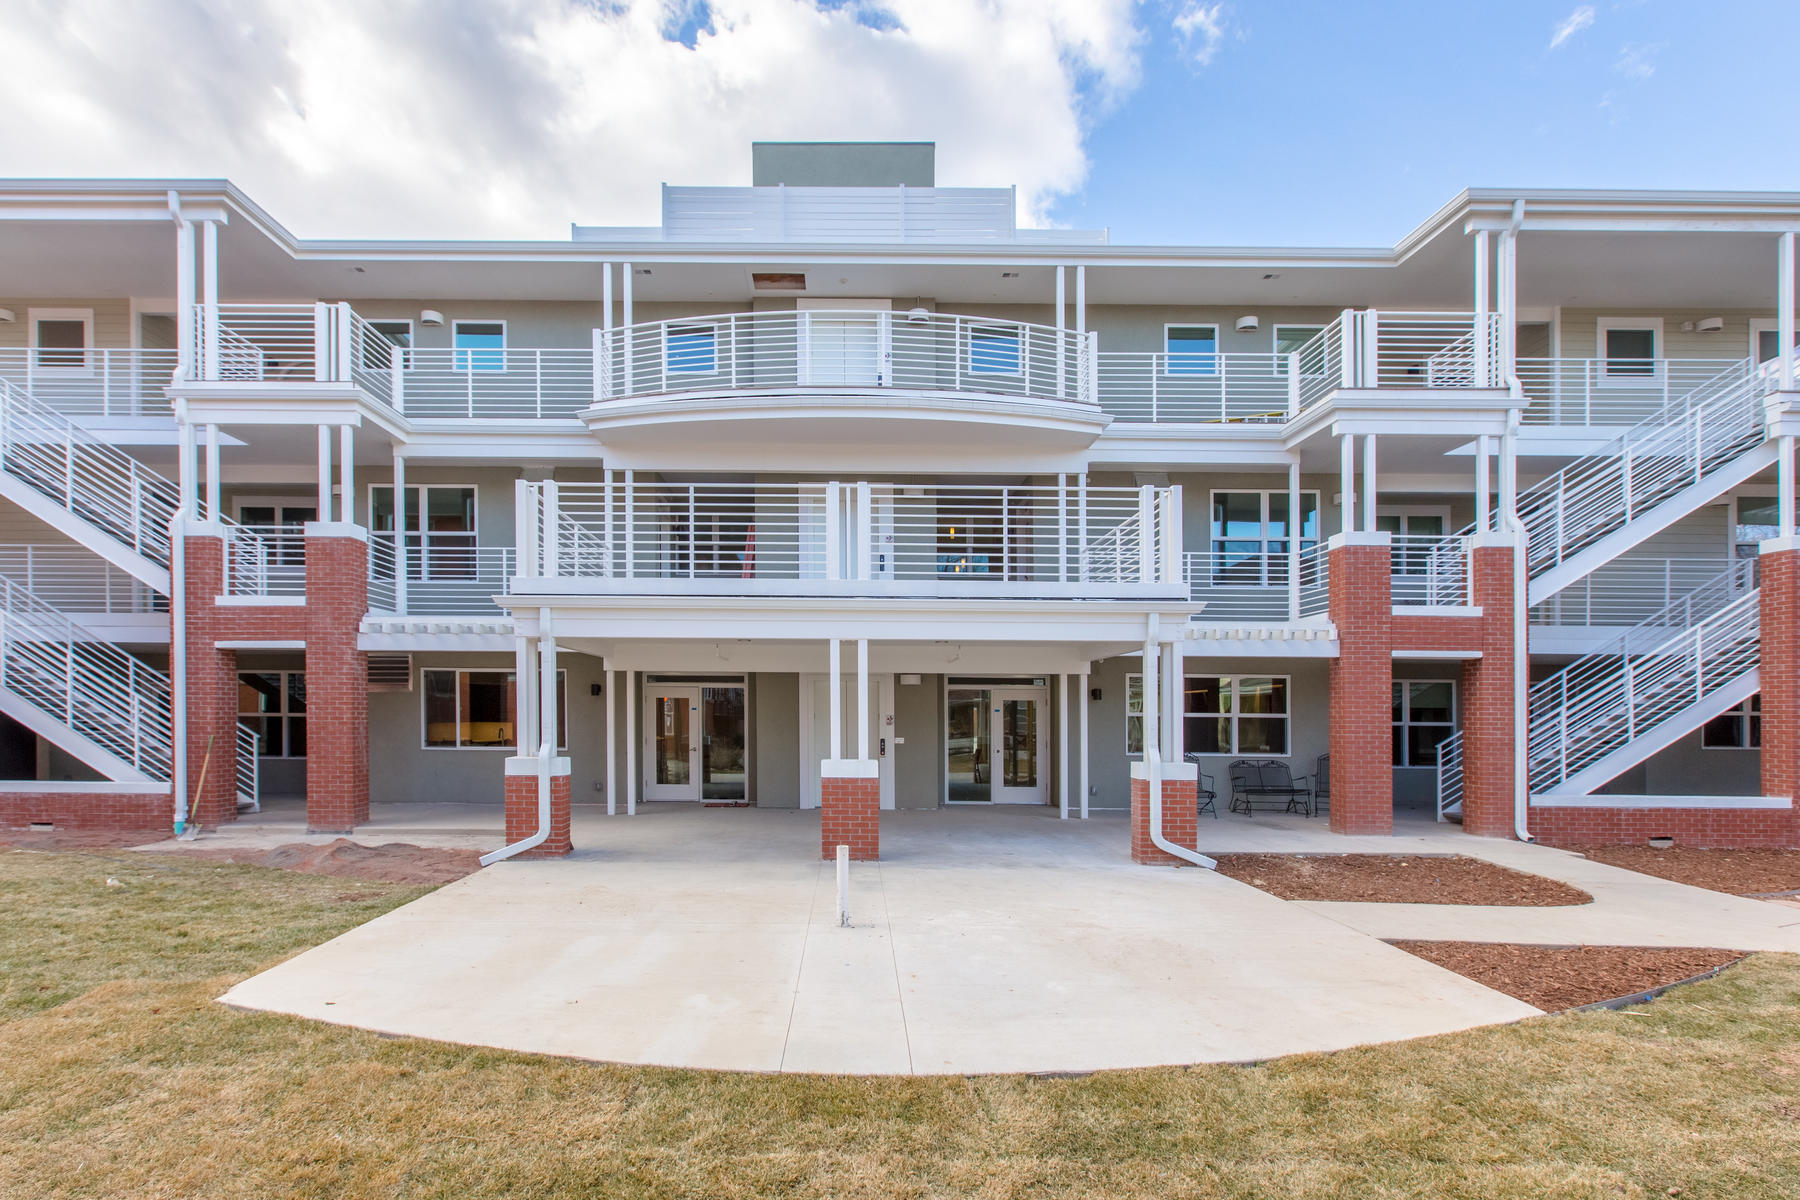 Single Family Home for Active at Washington Village Condo 2930 Broadway St 202 Boulder, Colorado 80304 United States